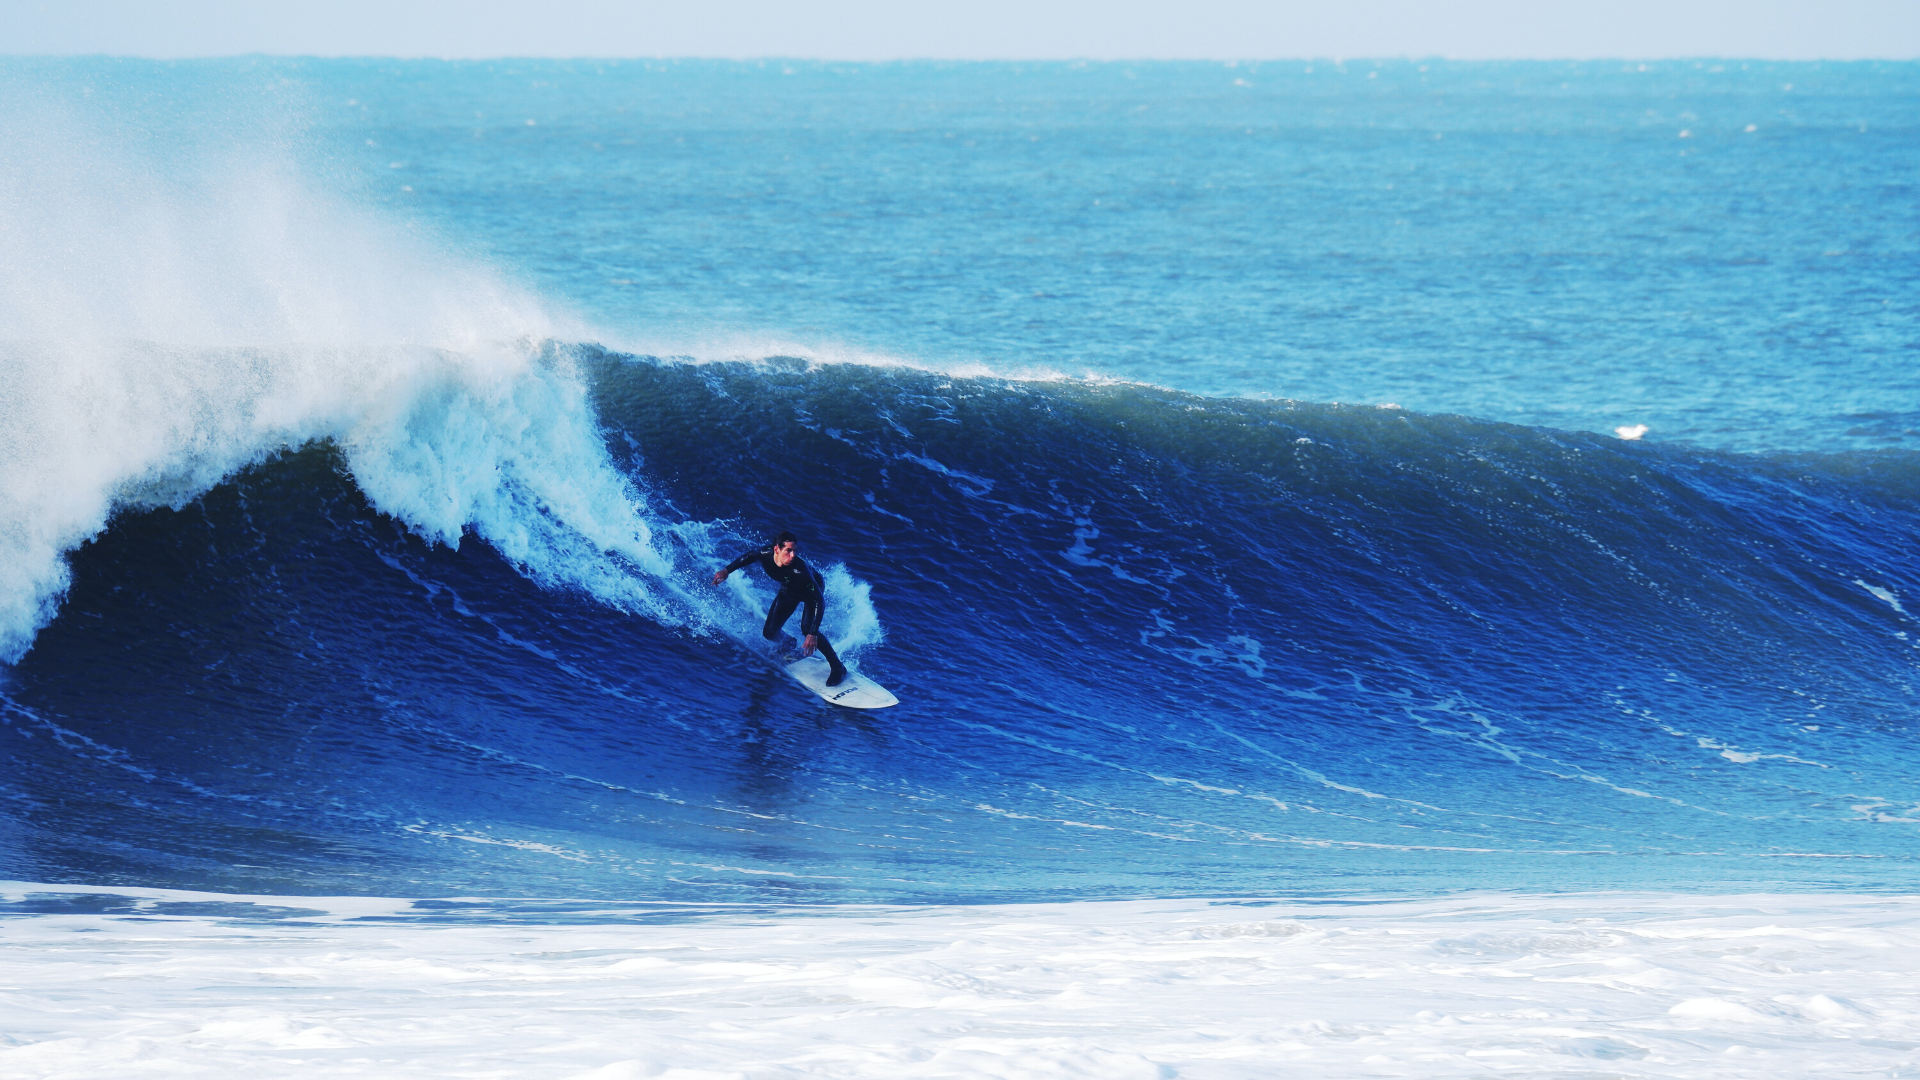 Surfing England & South Wales - Our Top Three Picks For Surfing UK